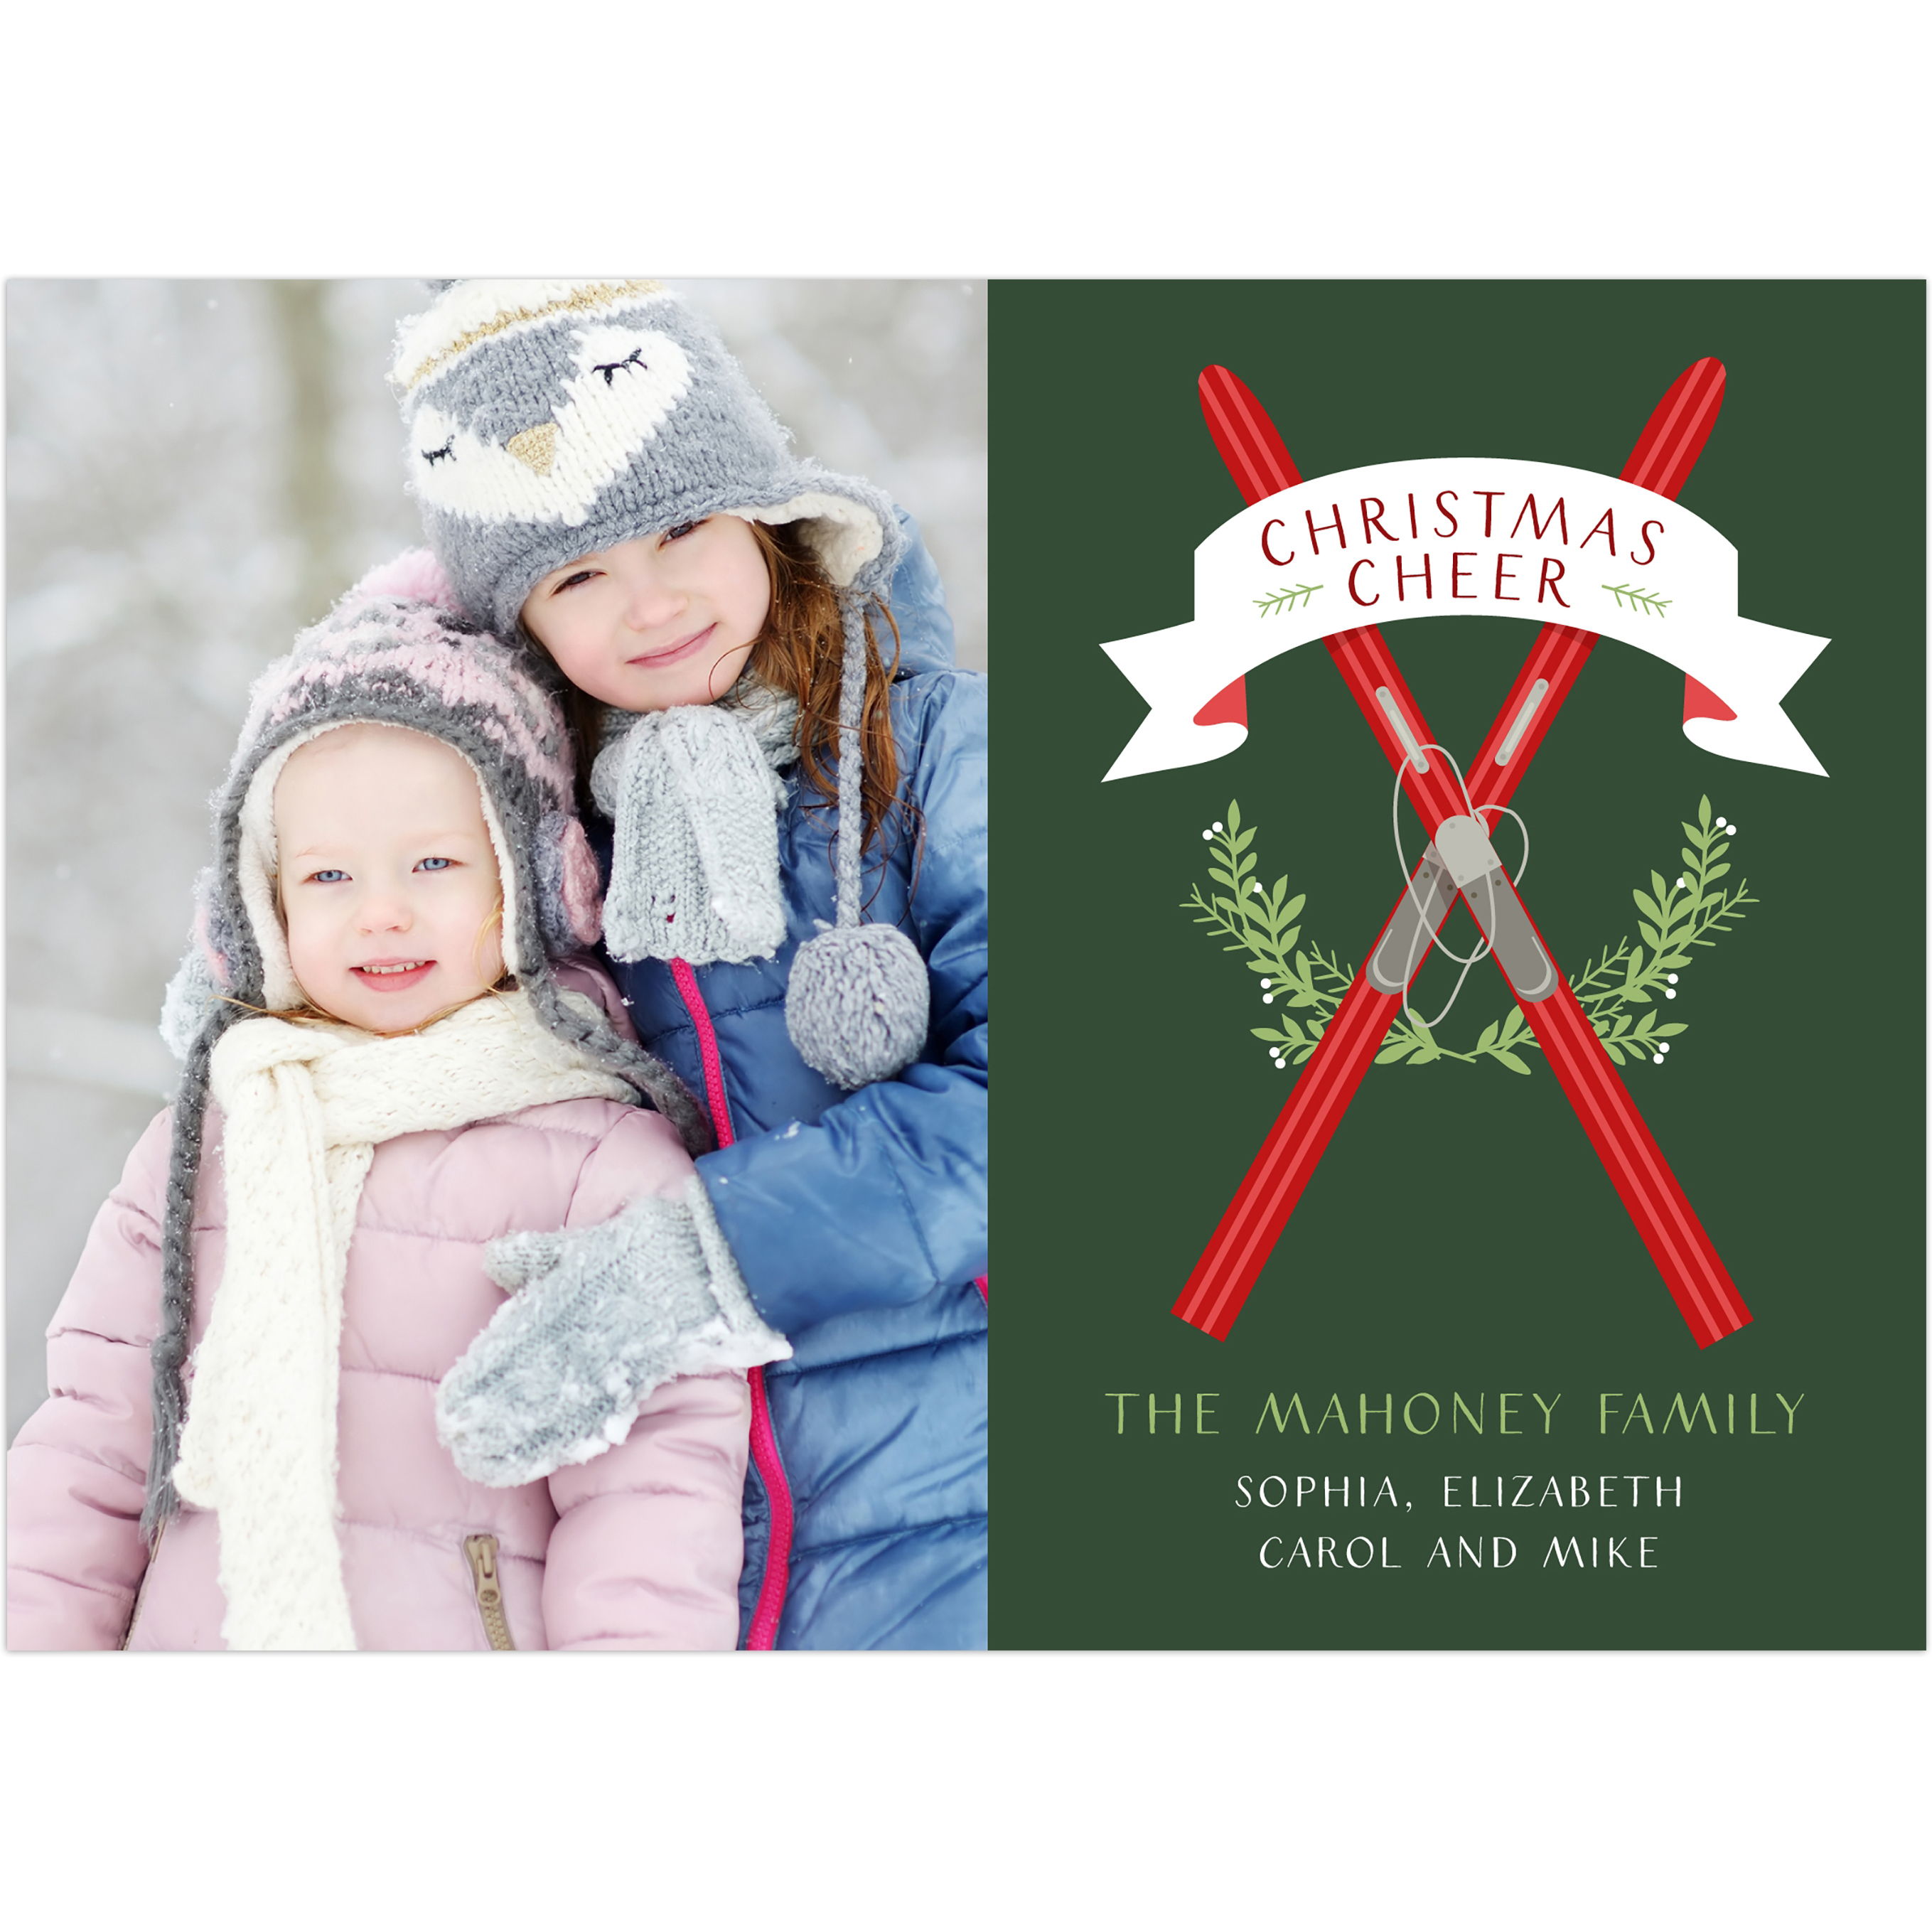 Ski House - 5x7 Personalized Christmas Card